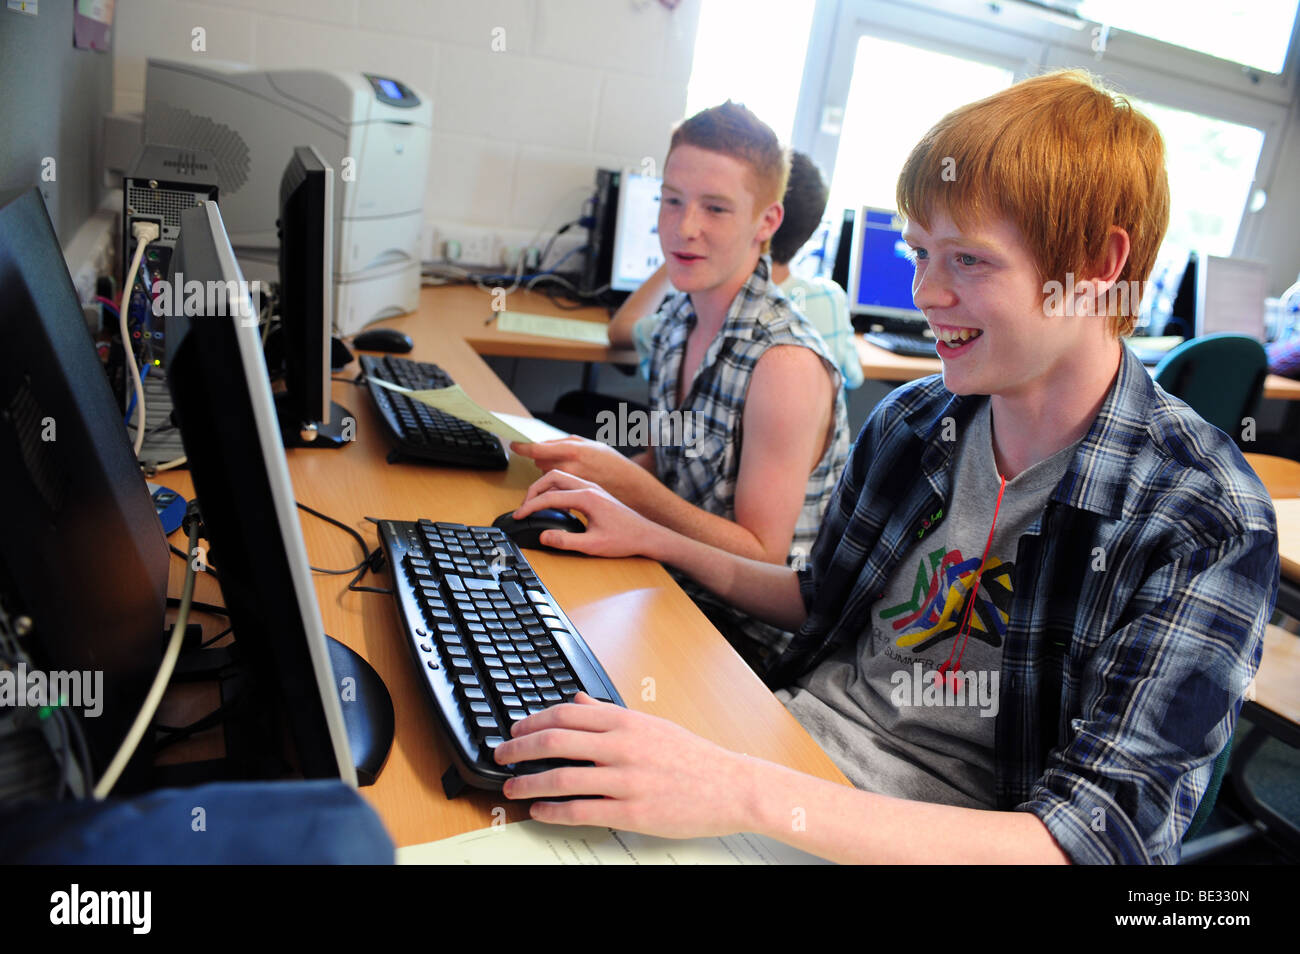 Students at sixth form further education college using computers - Stock Image